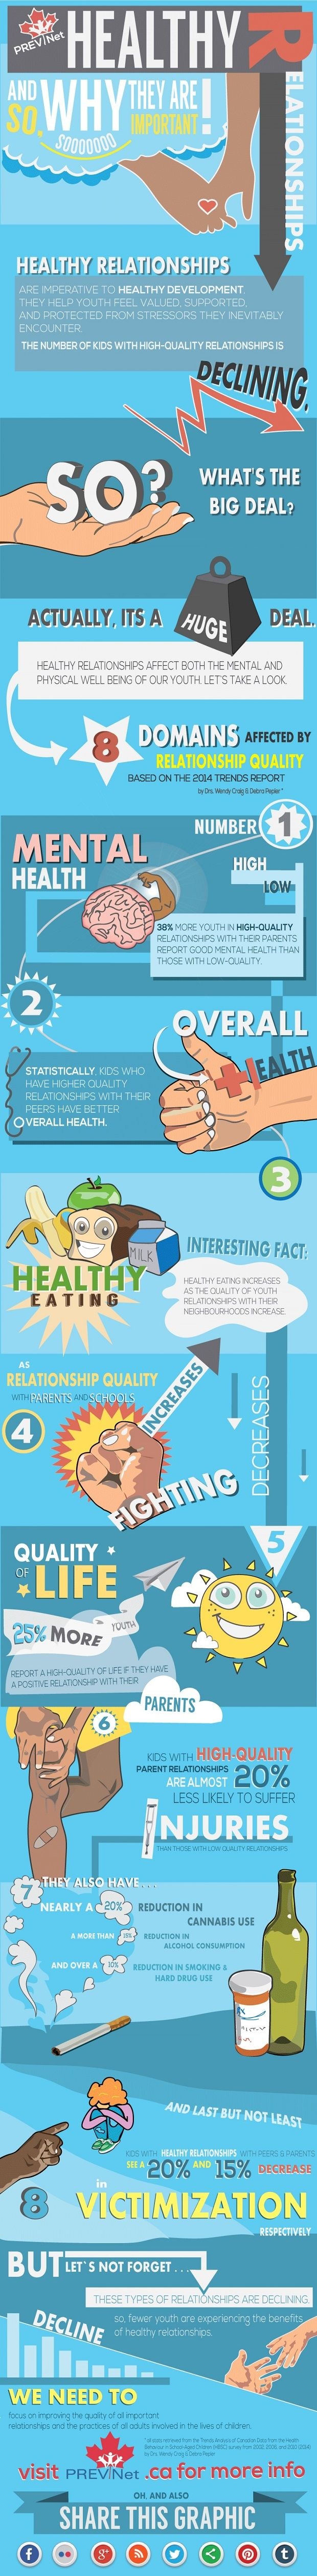 Bullying Statistics            PREVNet has released its third infographic, Facts on Healthy Relationships. This infographic is part of an ongoing series and features the latest statistics on bullying.